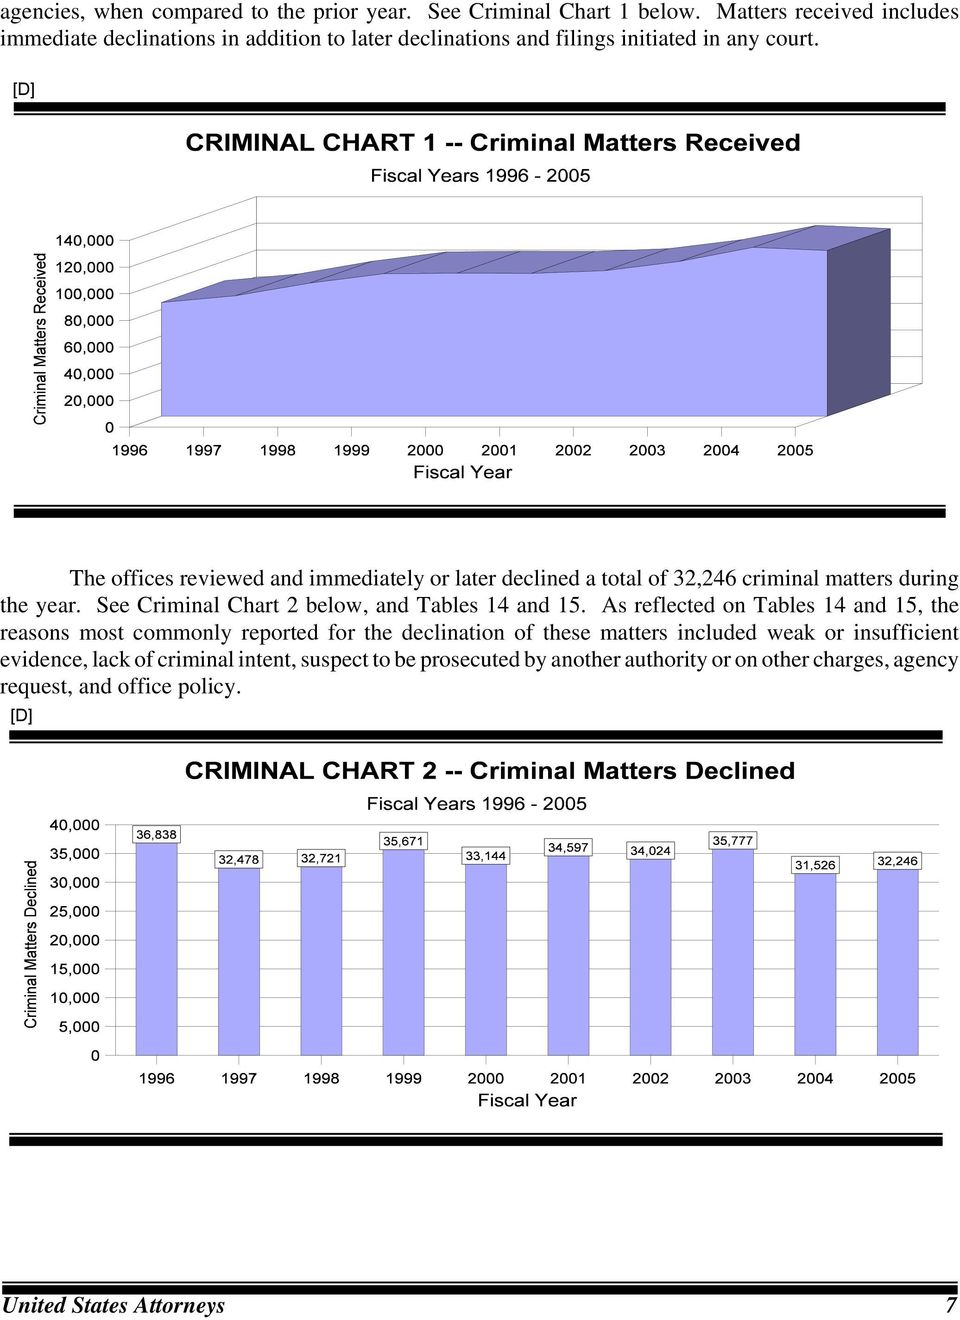 The offices reviewed and immediately or later declined a total of 32,246 criminal matters during the year. See Criminal Chart 2 below, and Tables 14 and 15.